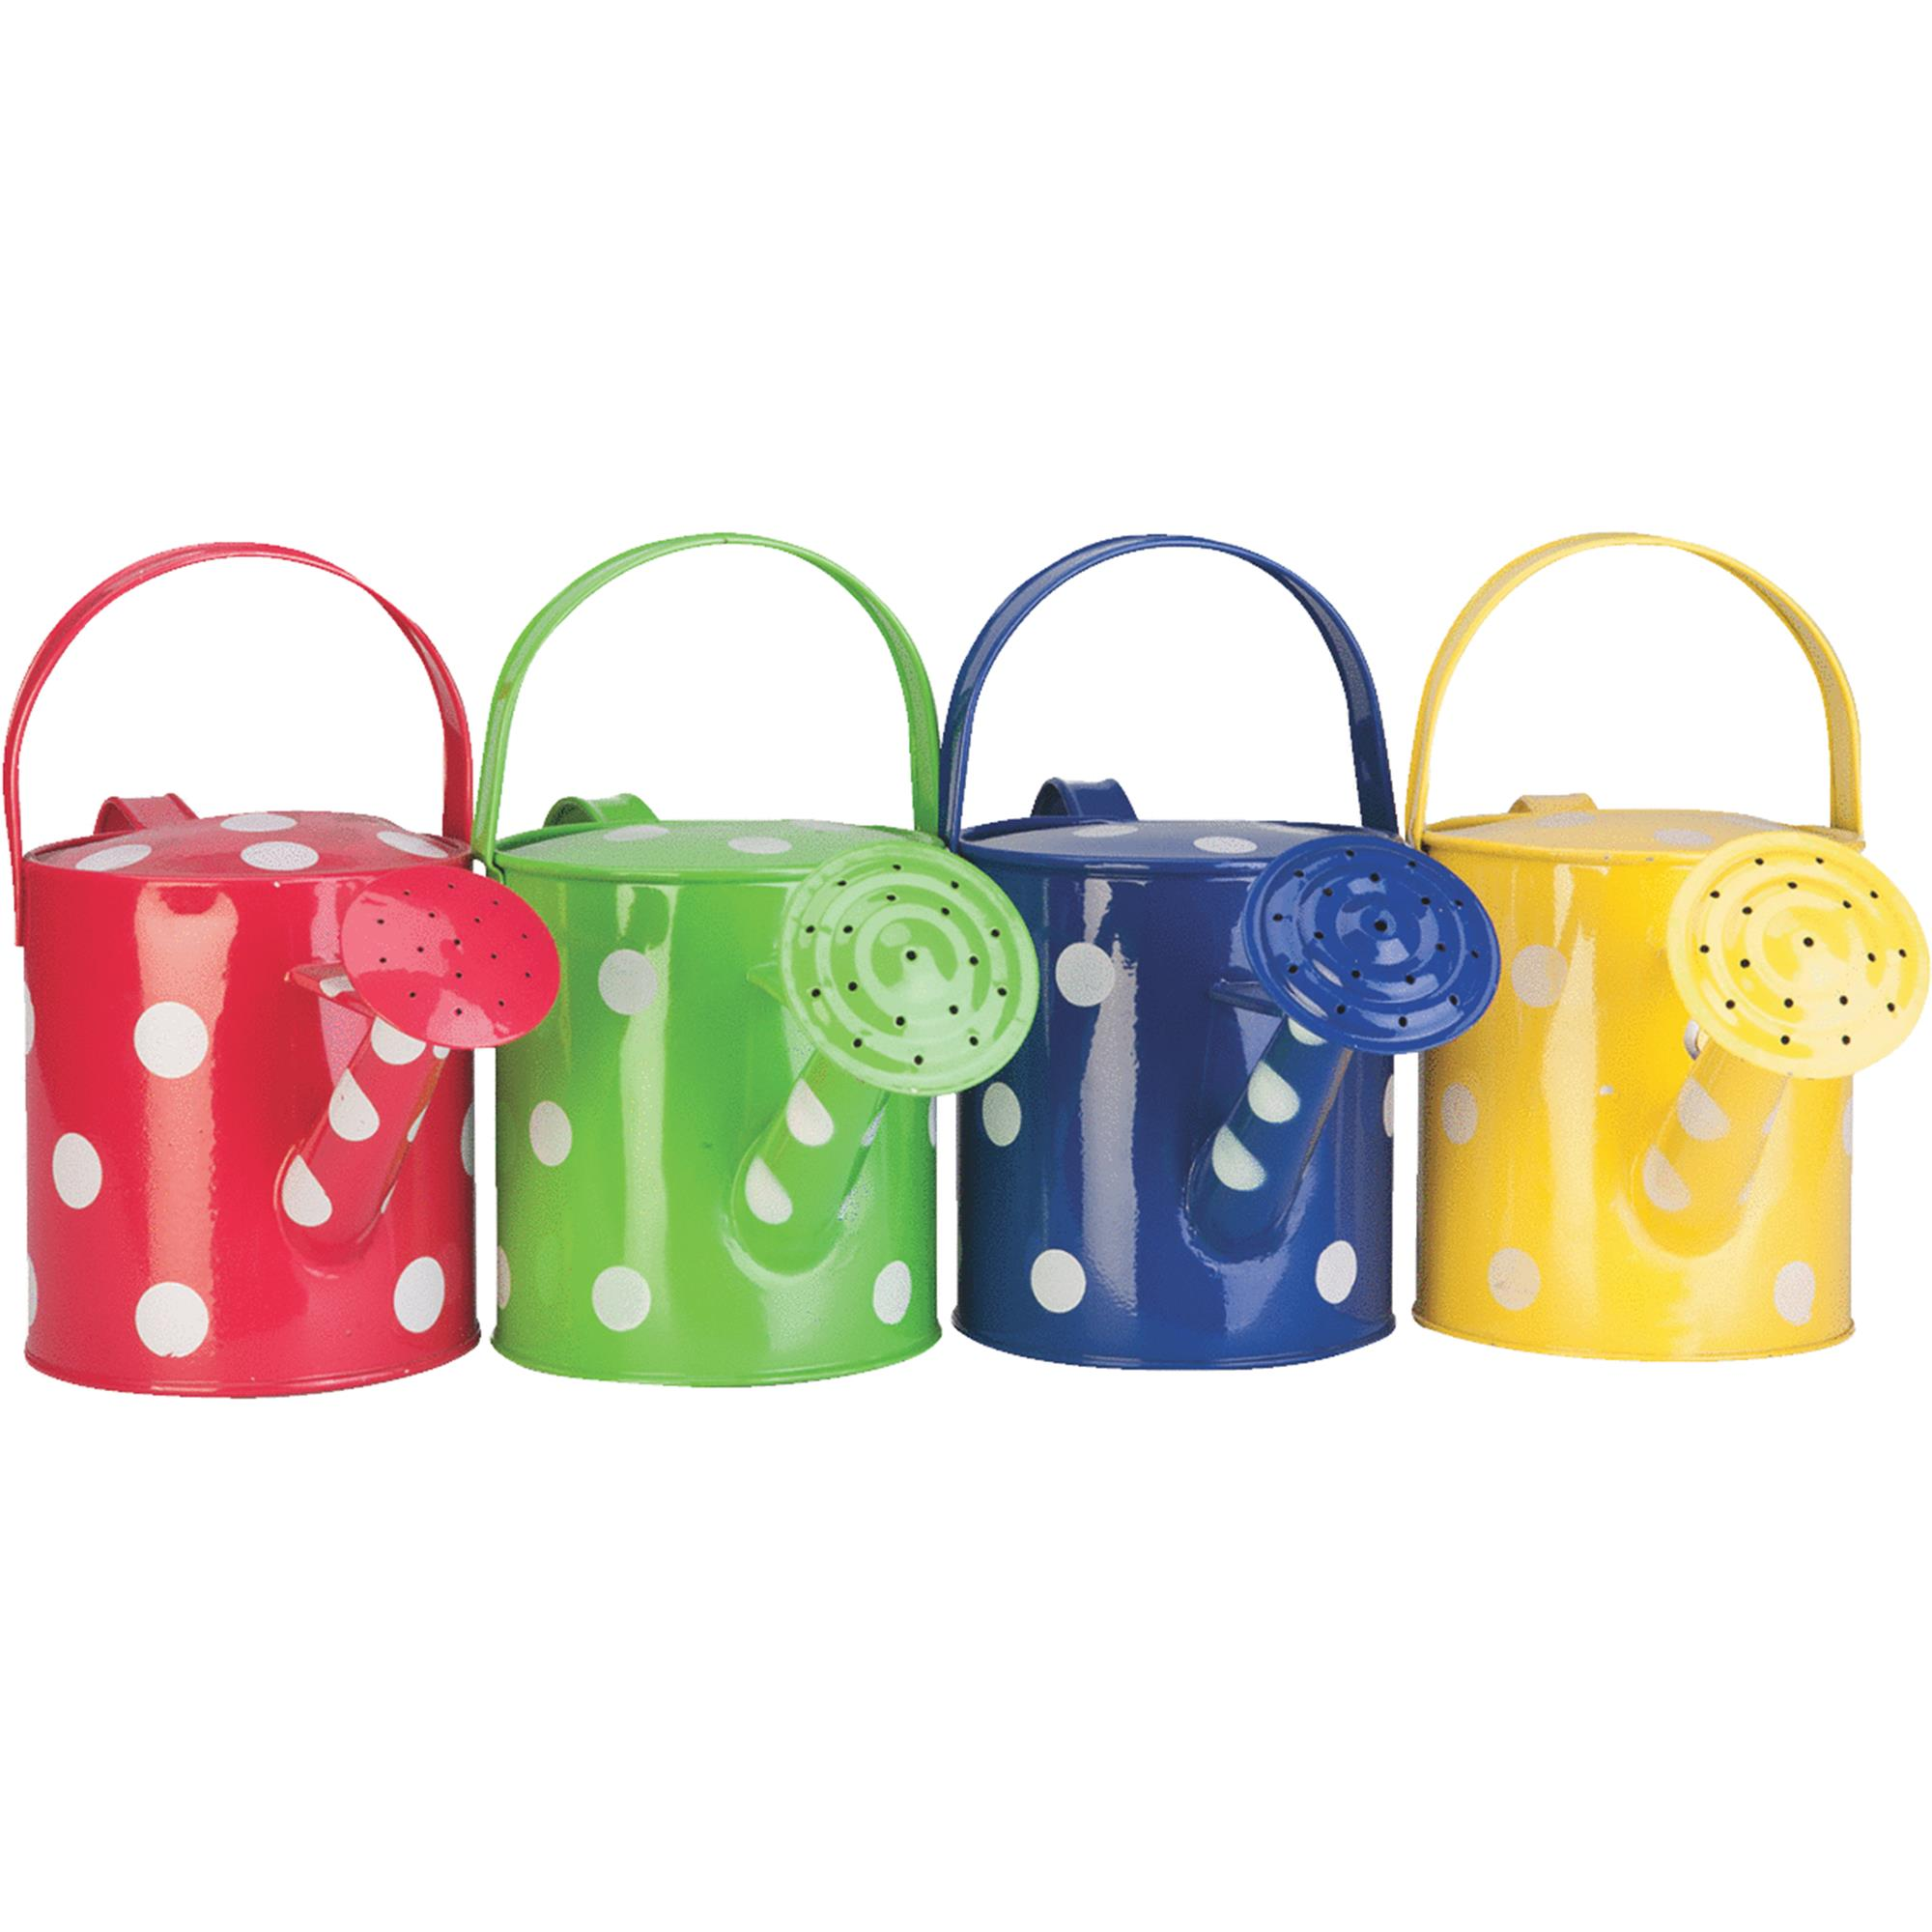 Panacea Polka Dot Watering Can by PANACEA PRODUCTS CORP